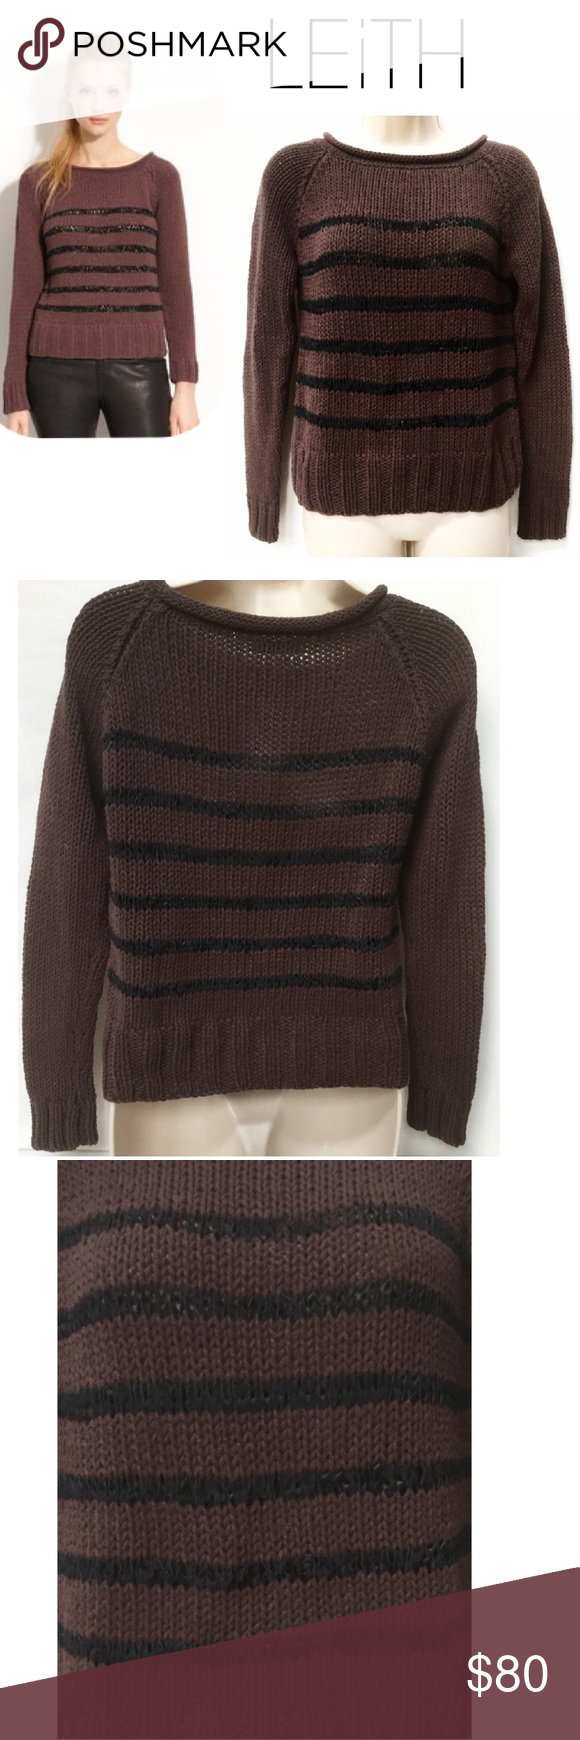 Nordstrom Leith Leather Stripe Sweater LEiTH Cotton Sweater Leather Braided Stripes Leather yarn forms stripes on nautically inspired sweater with edgy worn in feel, finished with wide ribbed trim at cuffs & rolled-edge boat neck Size: S Excellent Condition - Purchased From Nordstrom  💐20% OFF BUNDLES 👉🏼LOWBALL OFFERS WILL BE IGNORED 👆🏼Please use offer button to submit offer  👉🏼 view OFFER CHART for reference  👉🏼Sale/Reduced/Lowered items at lowest~bundle only for add'l disc…